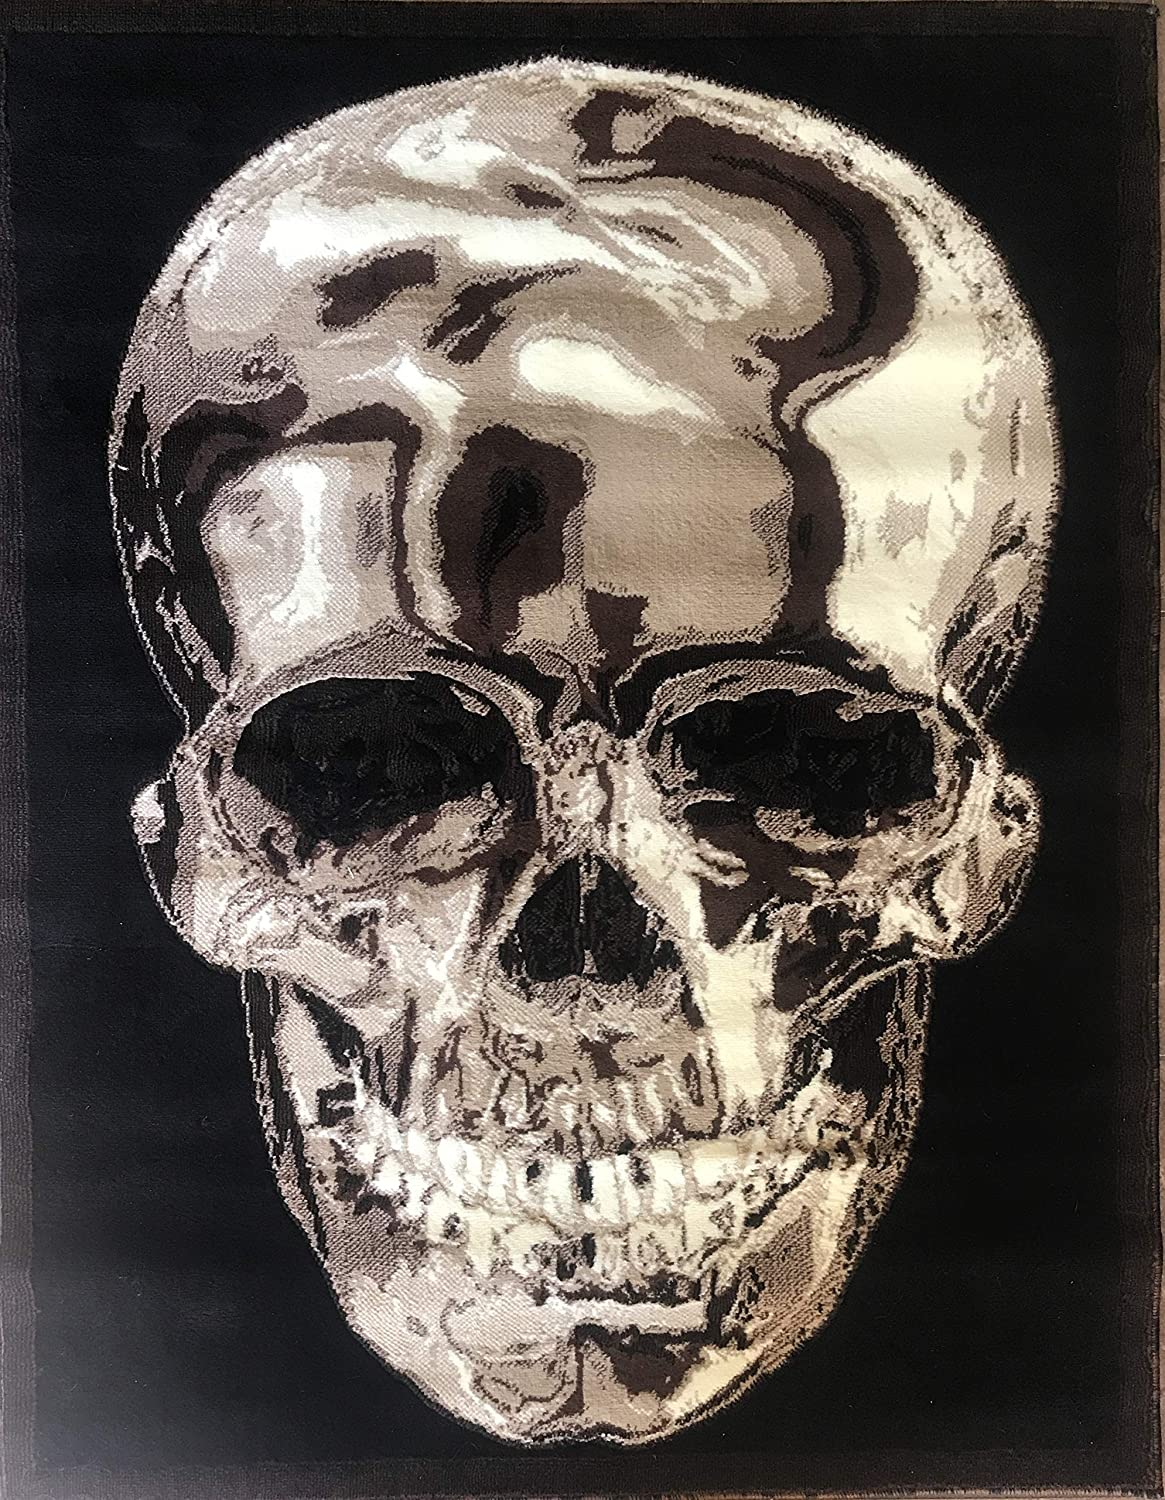 Skull Area Rug Brown Black Our shop most popular Americana Design F X Cheap mail order shopping 134 10 Feet 8